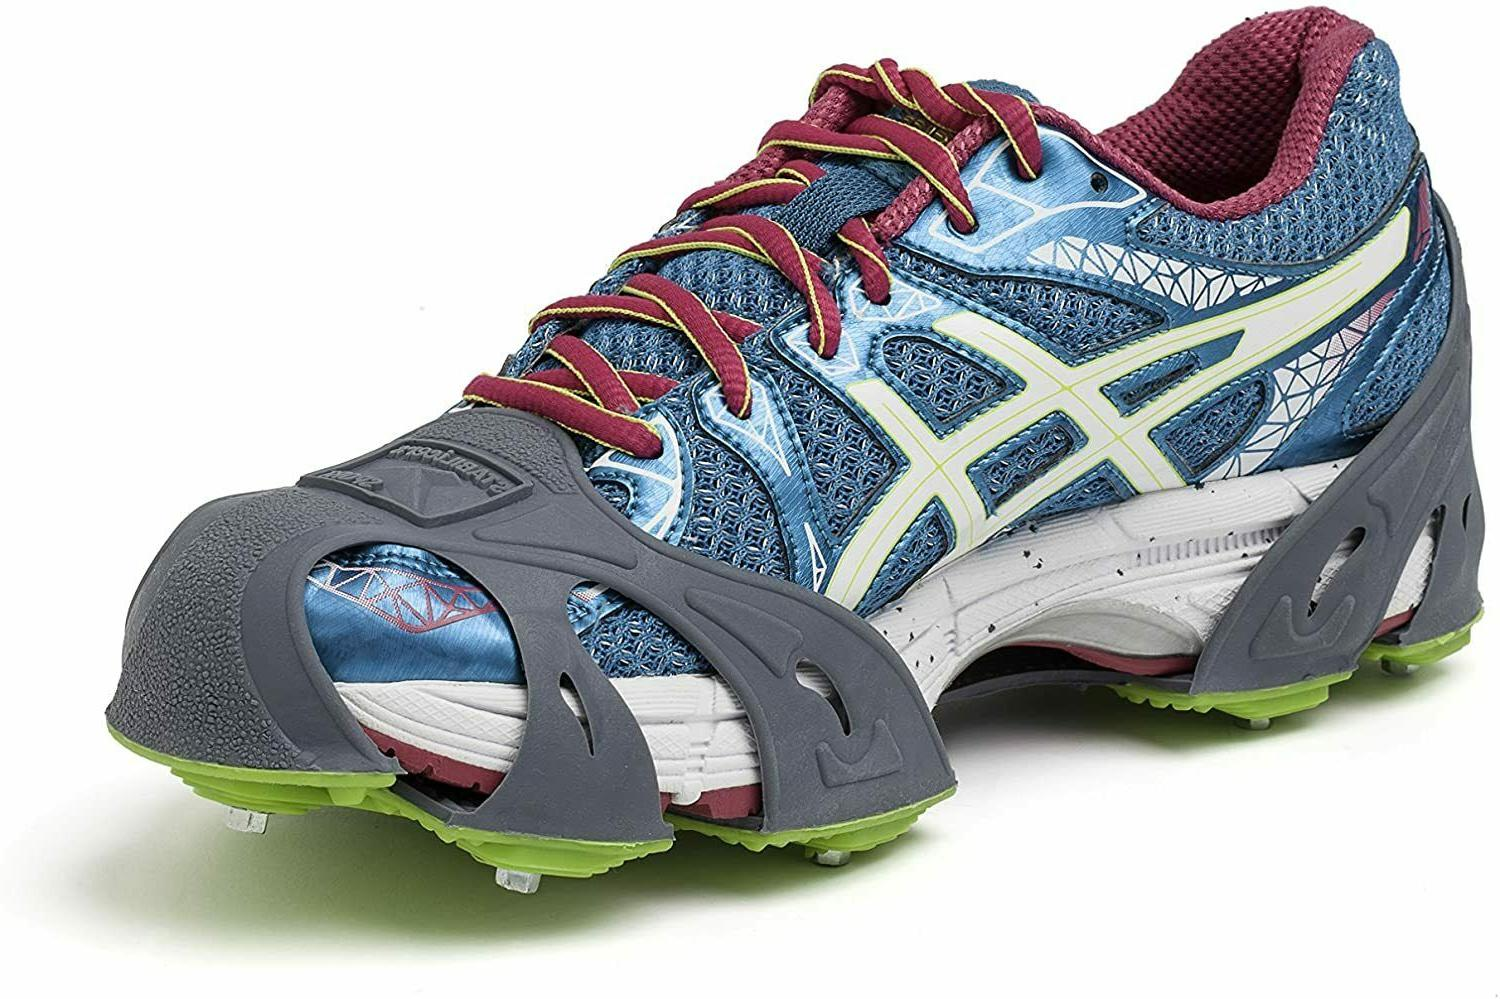 STABILicers Run Traction Cleats & Ice